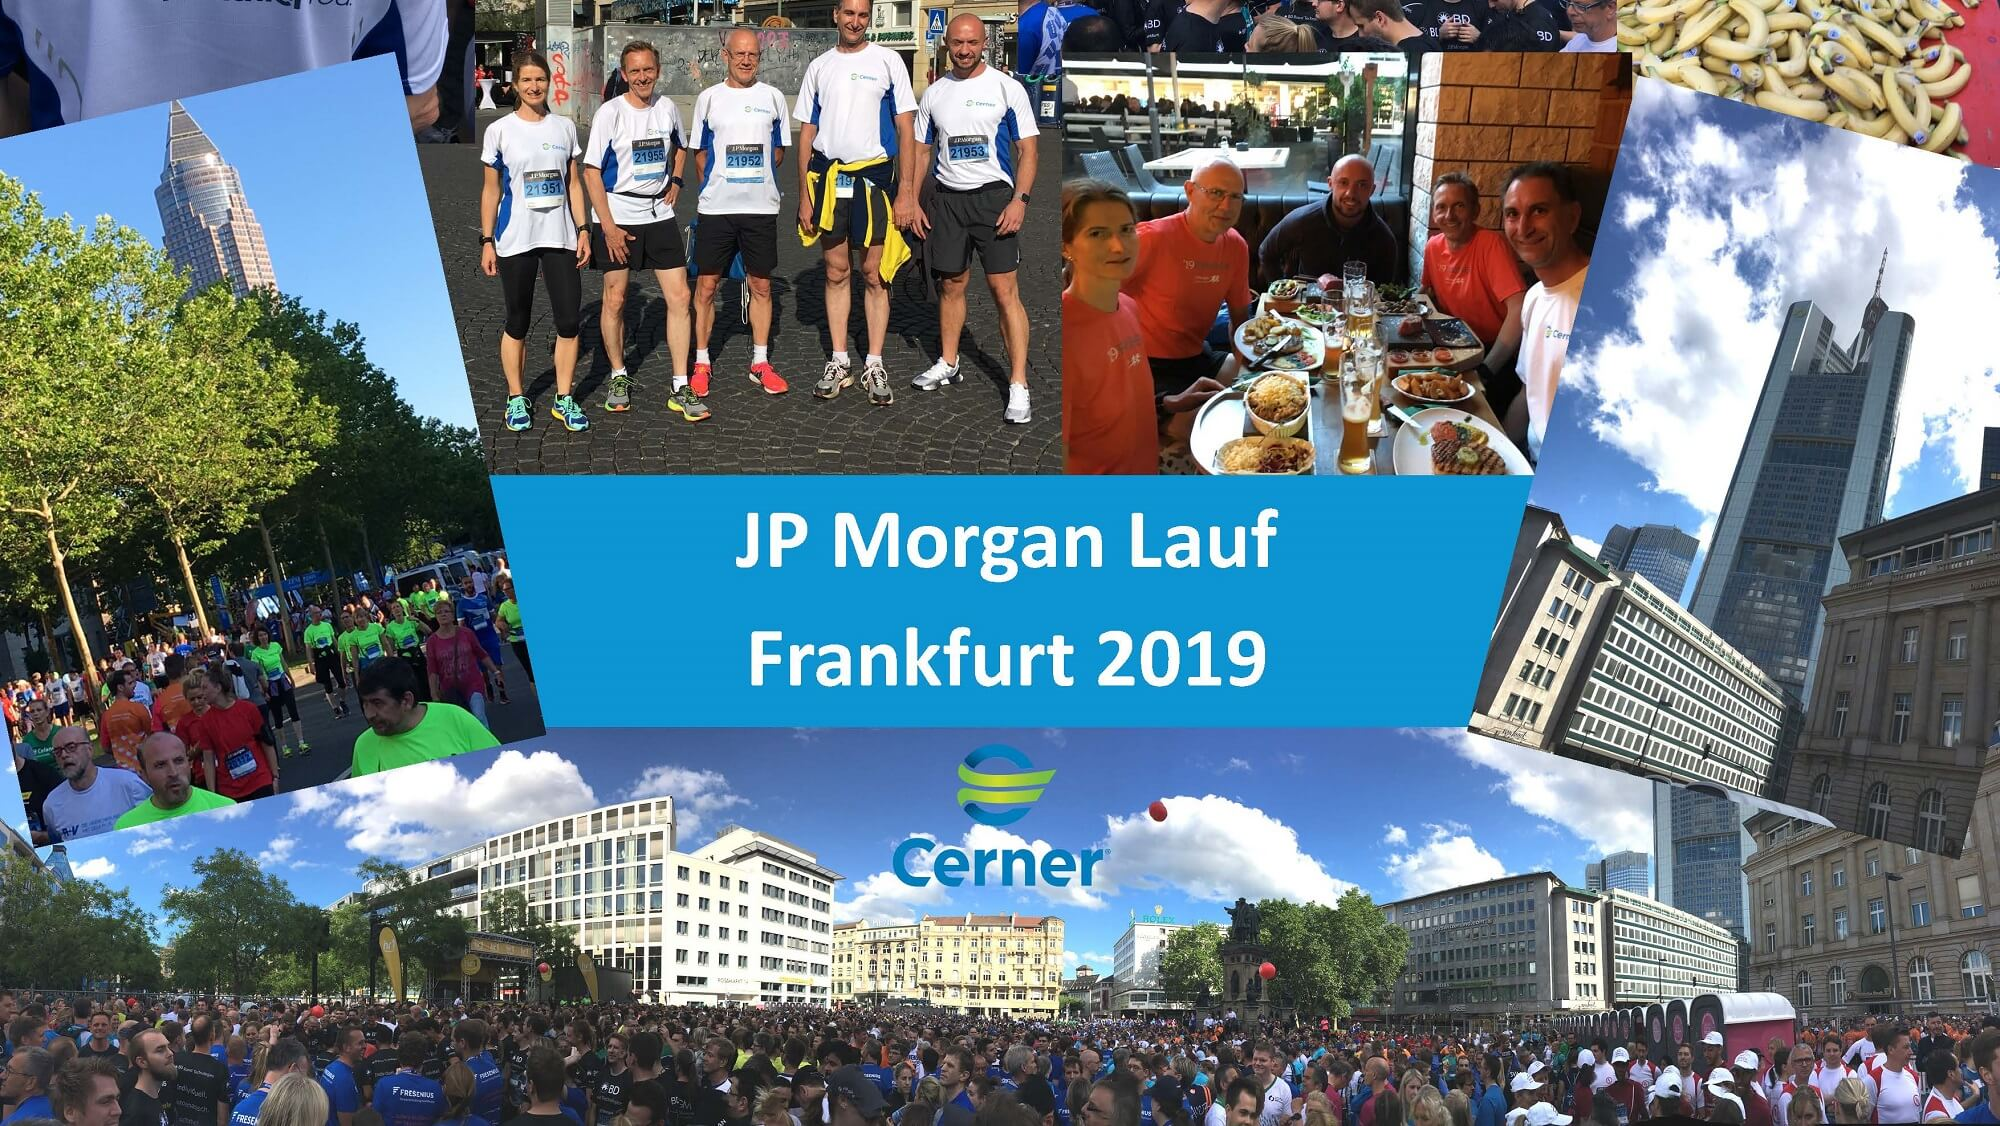 J.P. Morgan Corporate Challenge Lauf 2019 in Frankfurt